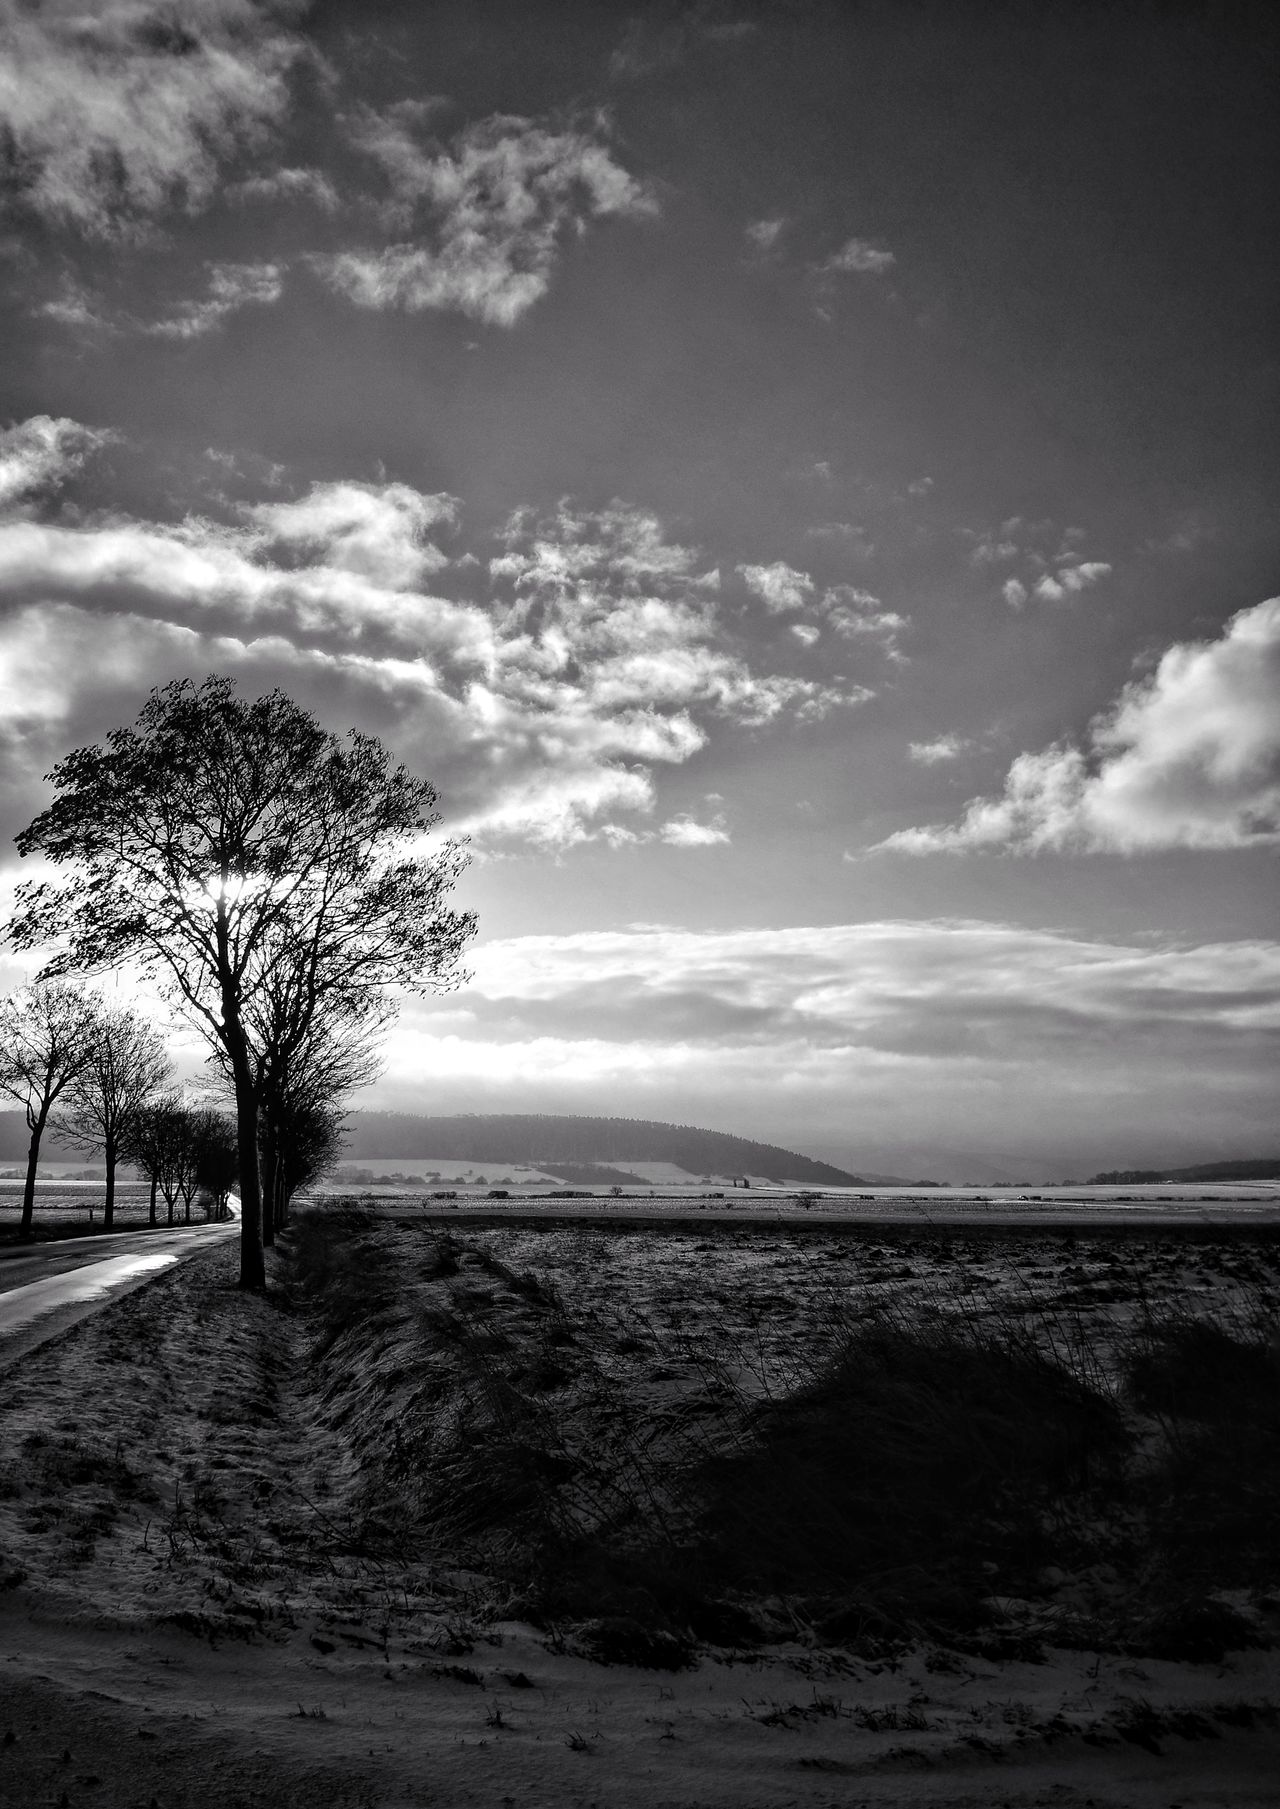 Nature Sky Tree Tranquility Idyllic Beauty In Nature No People Outdoors Growth Scenics Cloud - Sky Landscape Cold Temperature Winter Snow ❄ Blackandwhite Photography Monochrome Photography Black & White